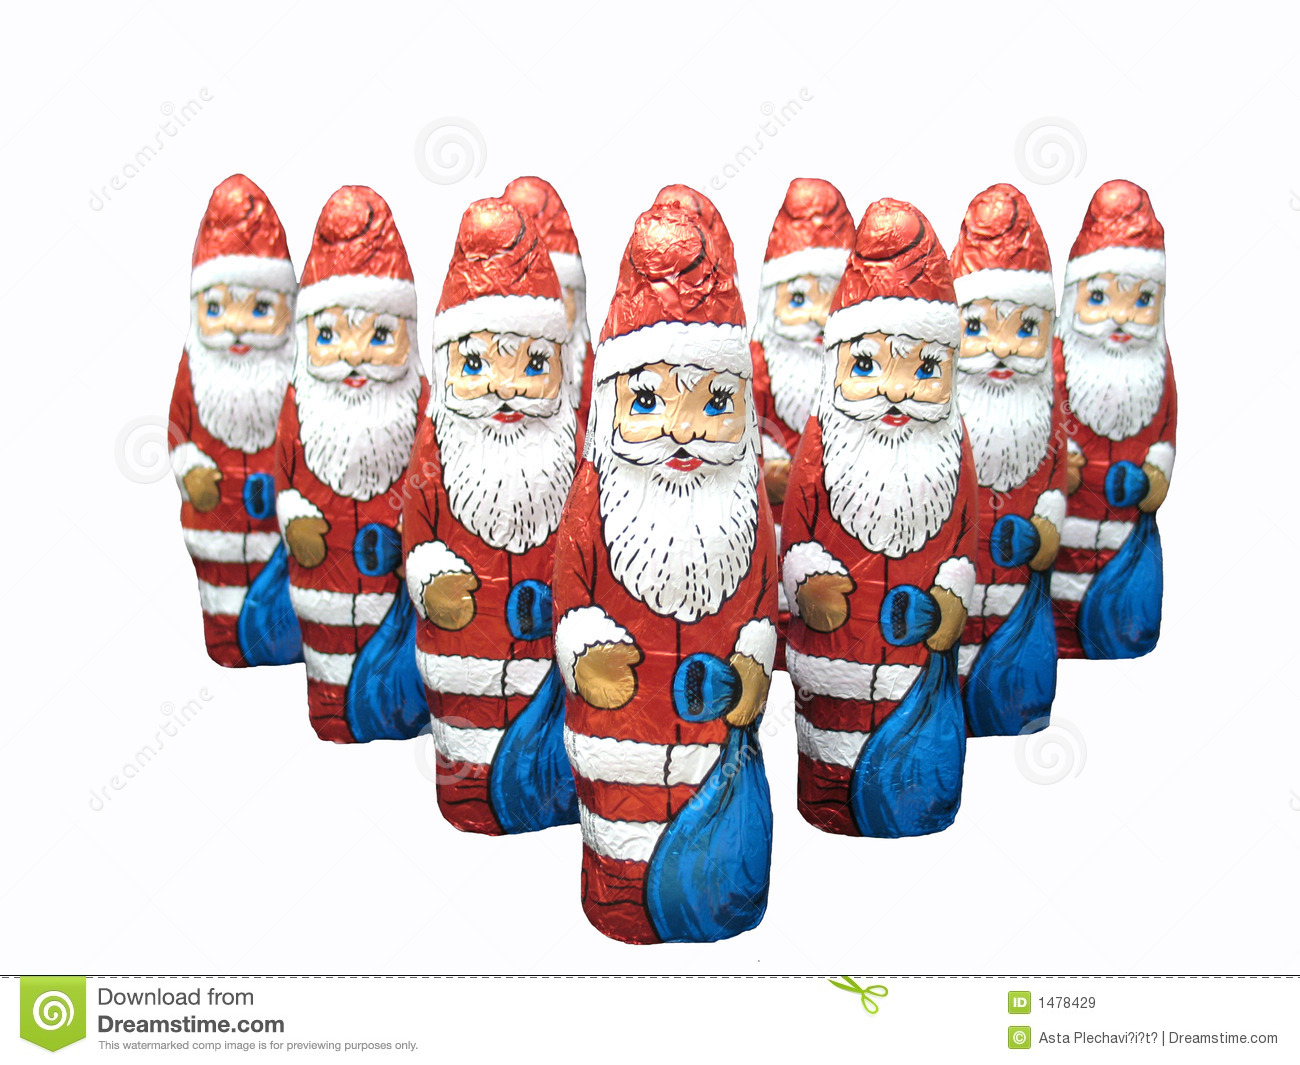 Chocolate santa claus clipart #3